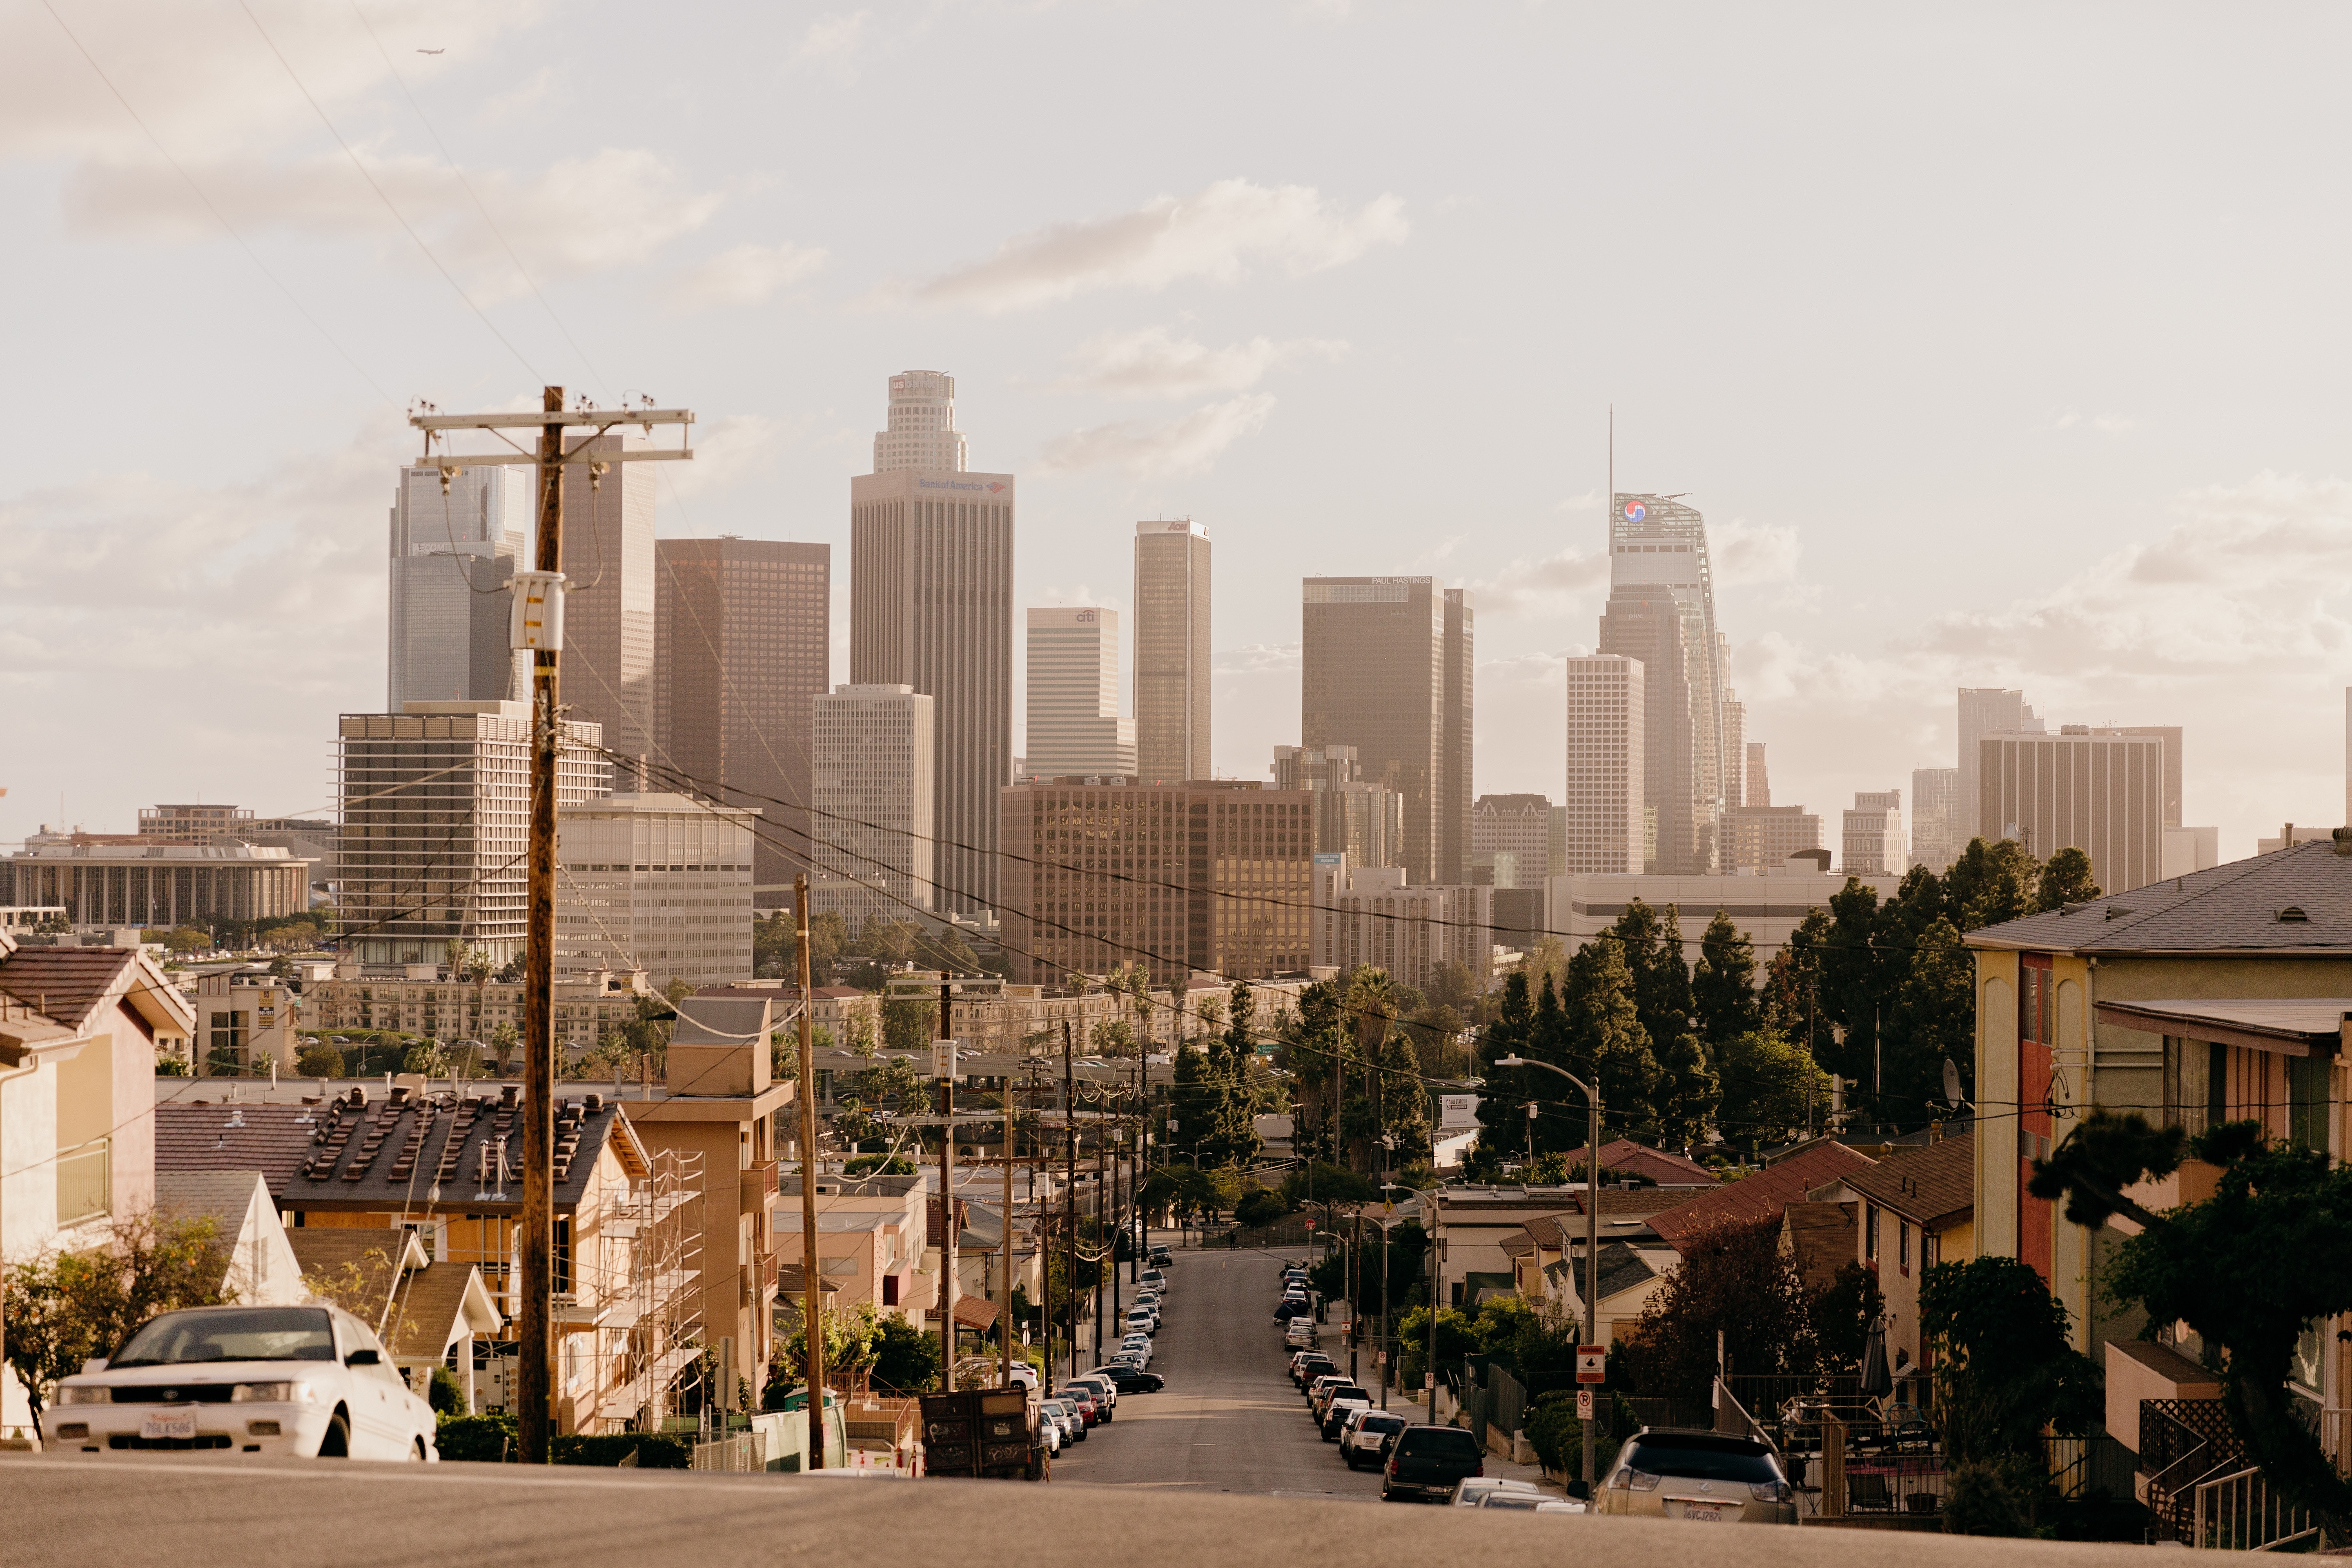 View of Downtown LA from a neighbourhood